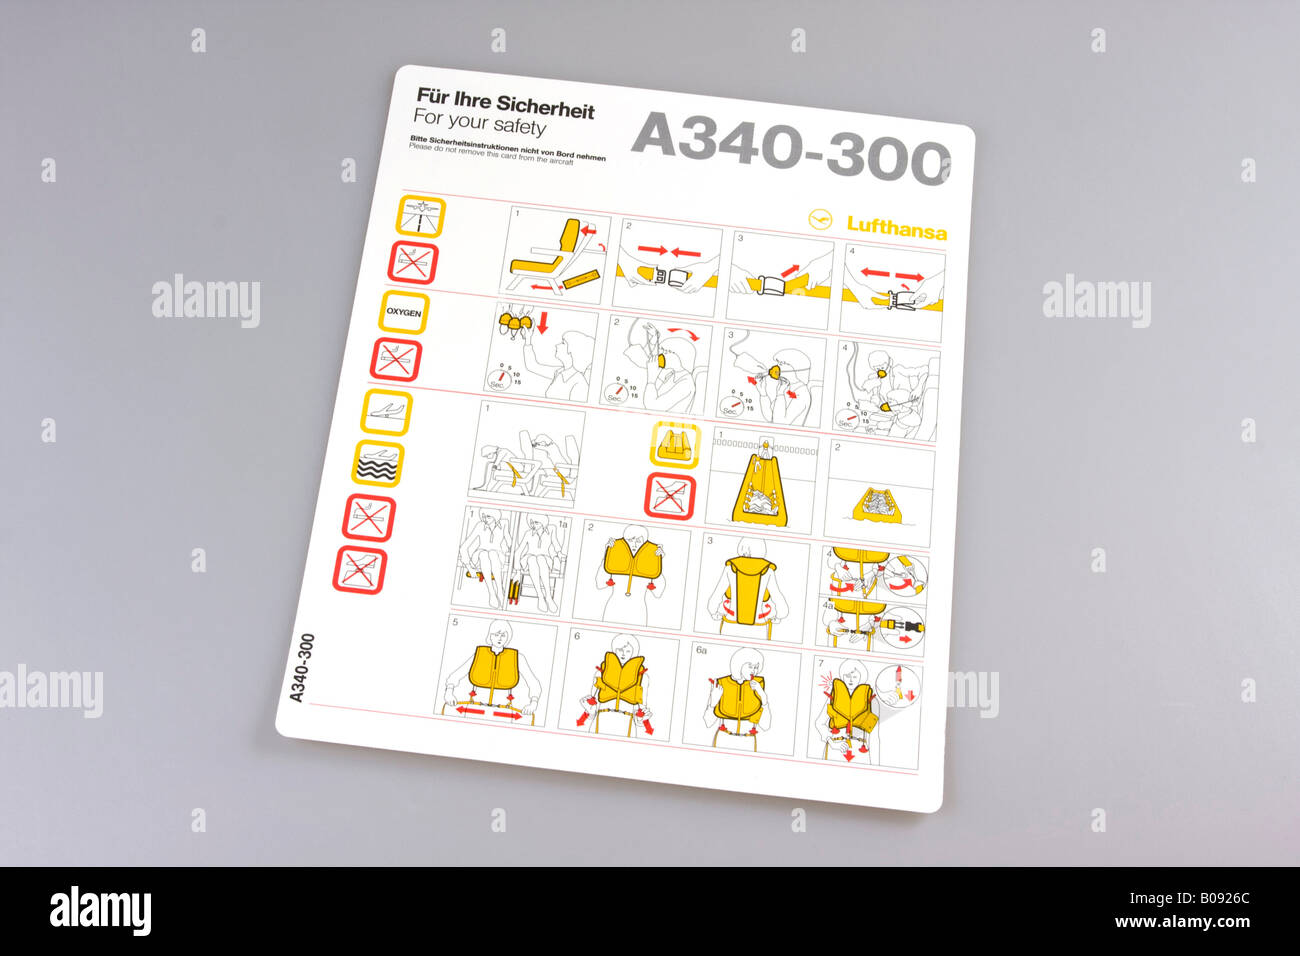 Lufthansa safety card, safety instructions for the Airbus A340-300 - Stock Image